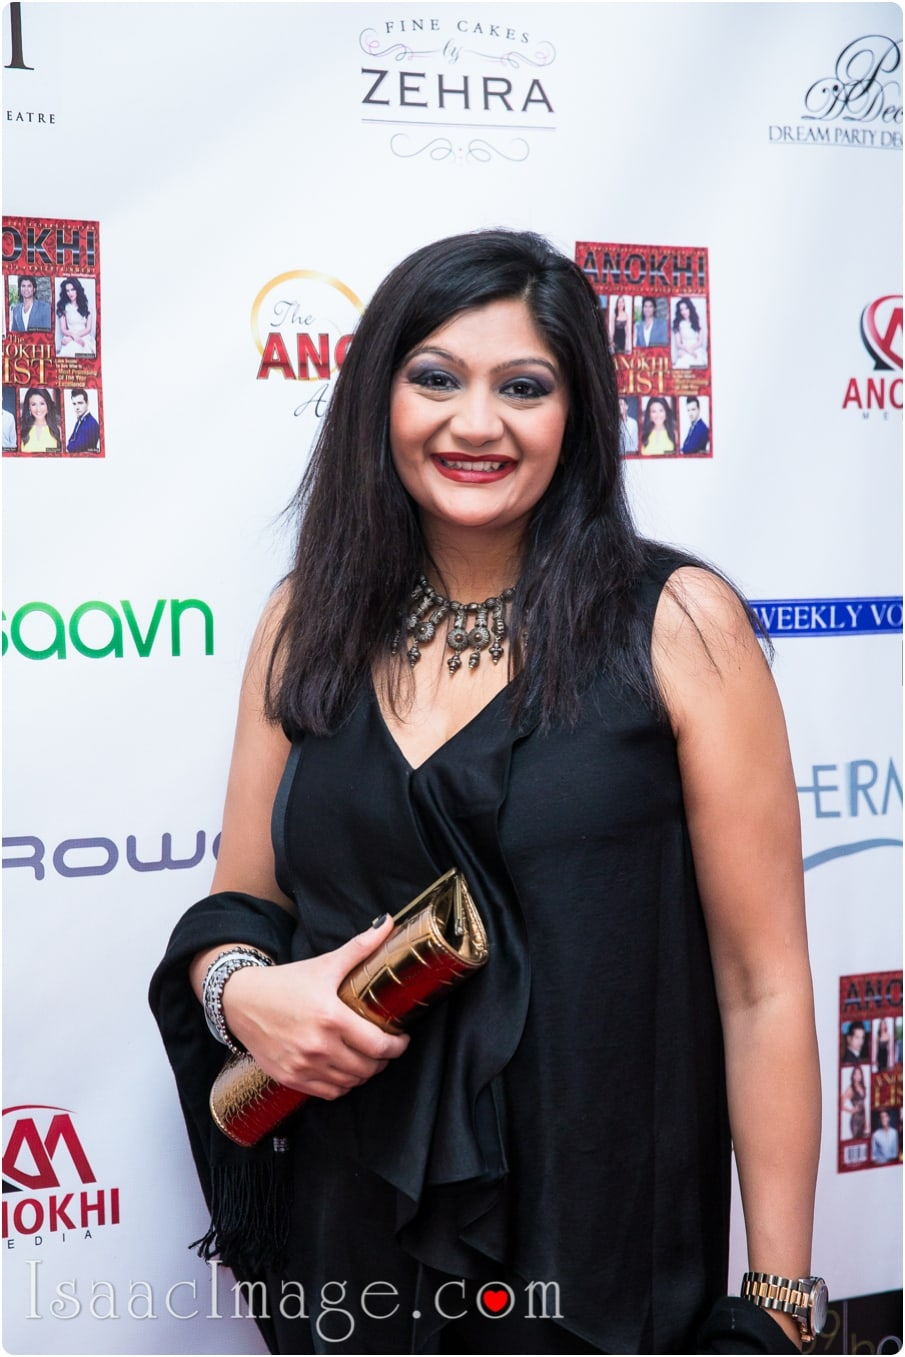 0136-Edit_ANOKHI media 11th Anniversary Event.jpg